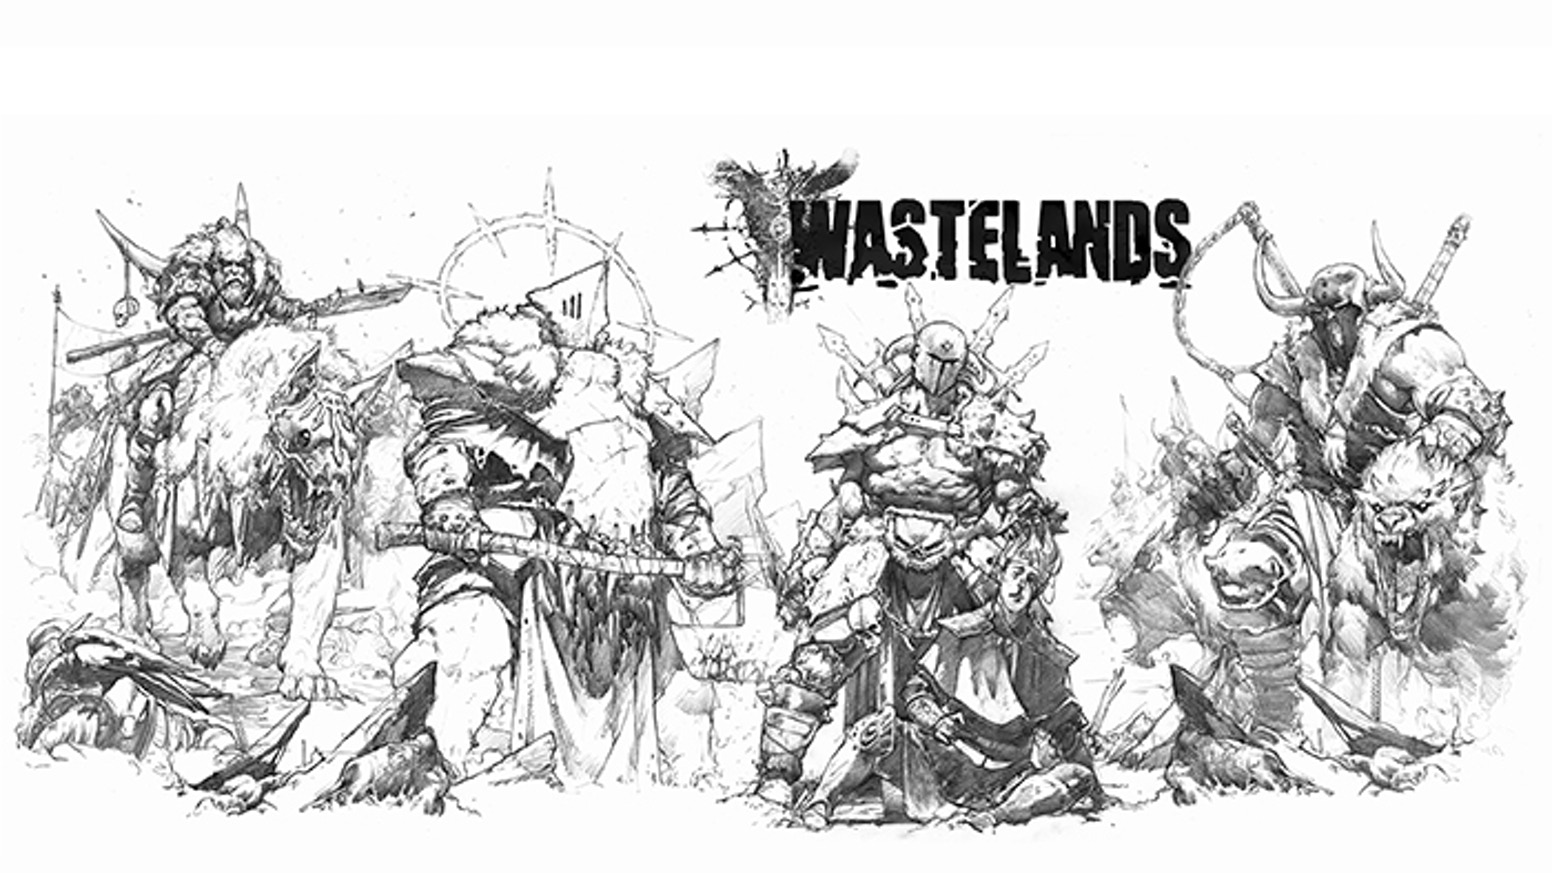 """Wastelands"" is a fantasy art book by Blocsanchez"